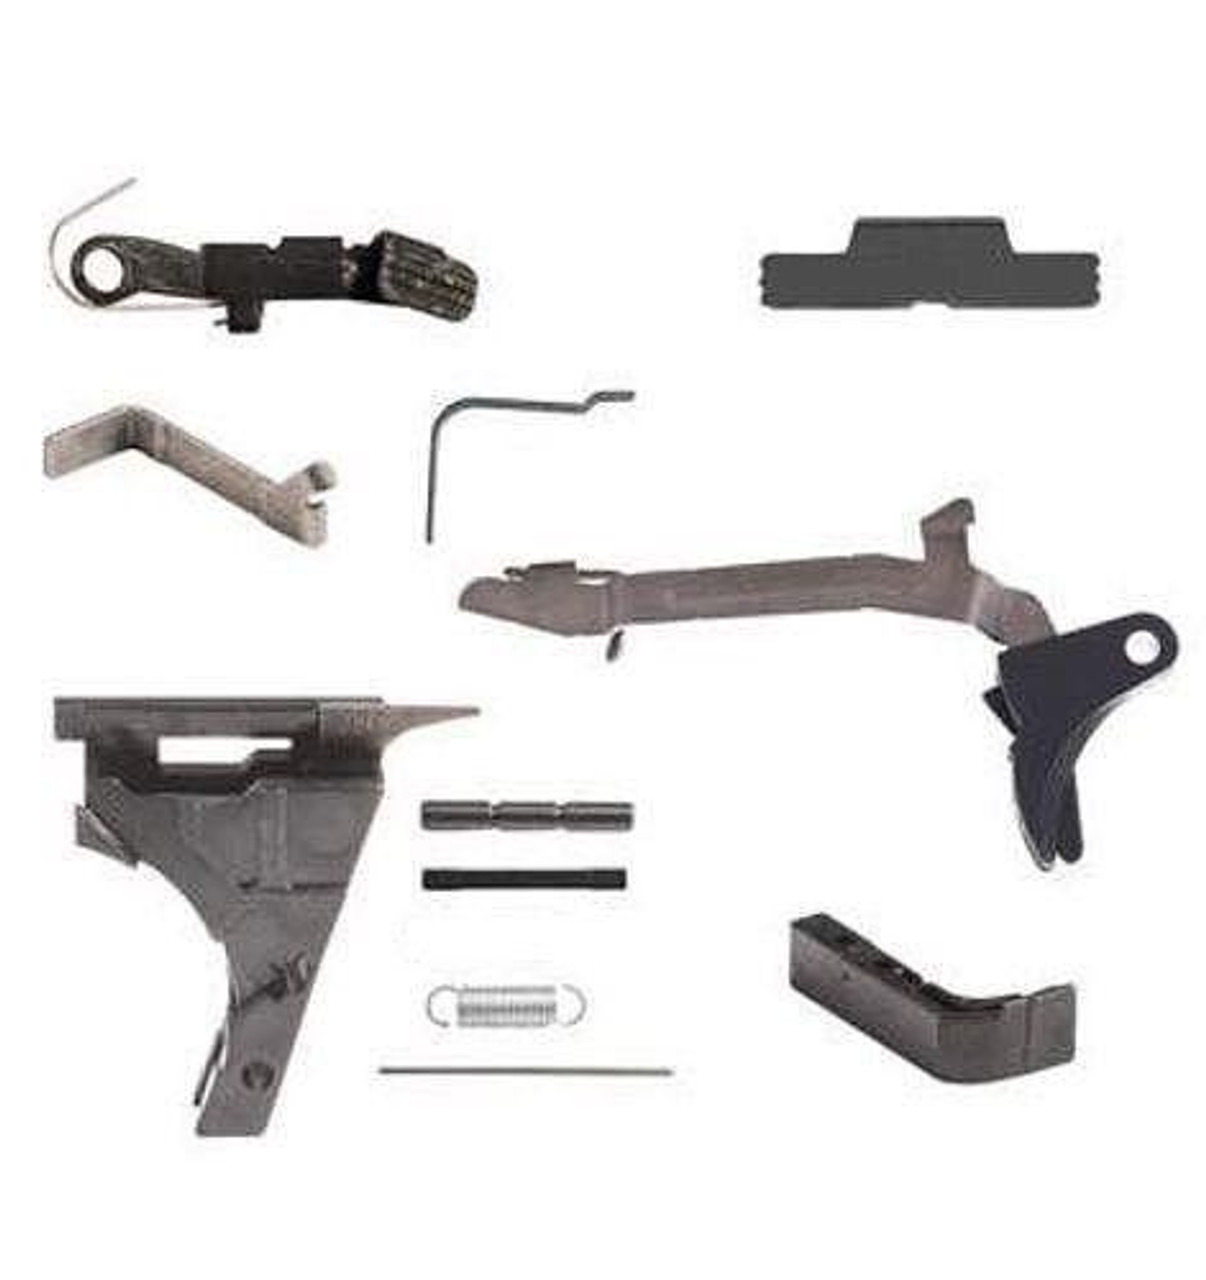 OEM Glock Frame Parts Kit Glock Gen 3 G19 9mm for Polymer80 Compact, Subcompact, and Compact Longslide Frames